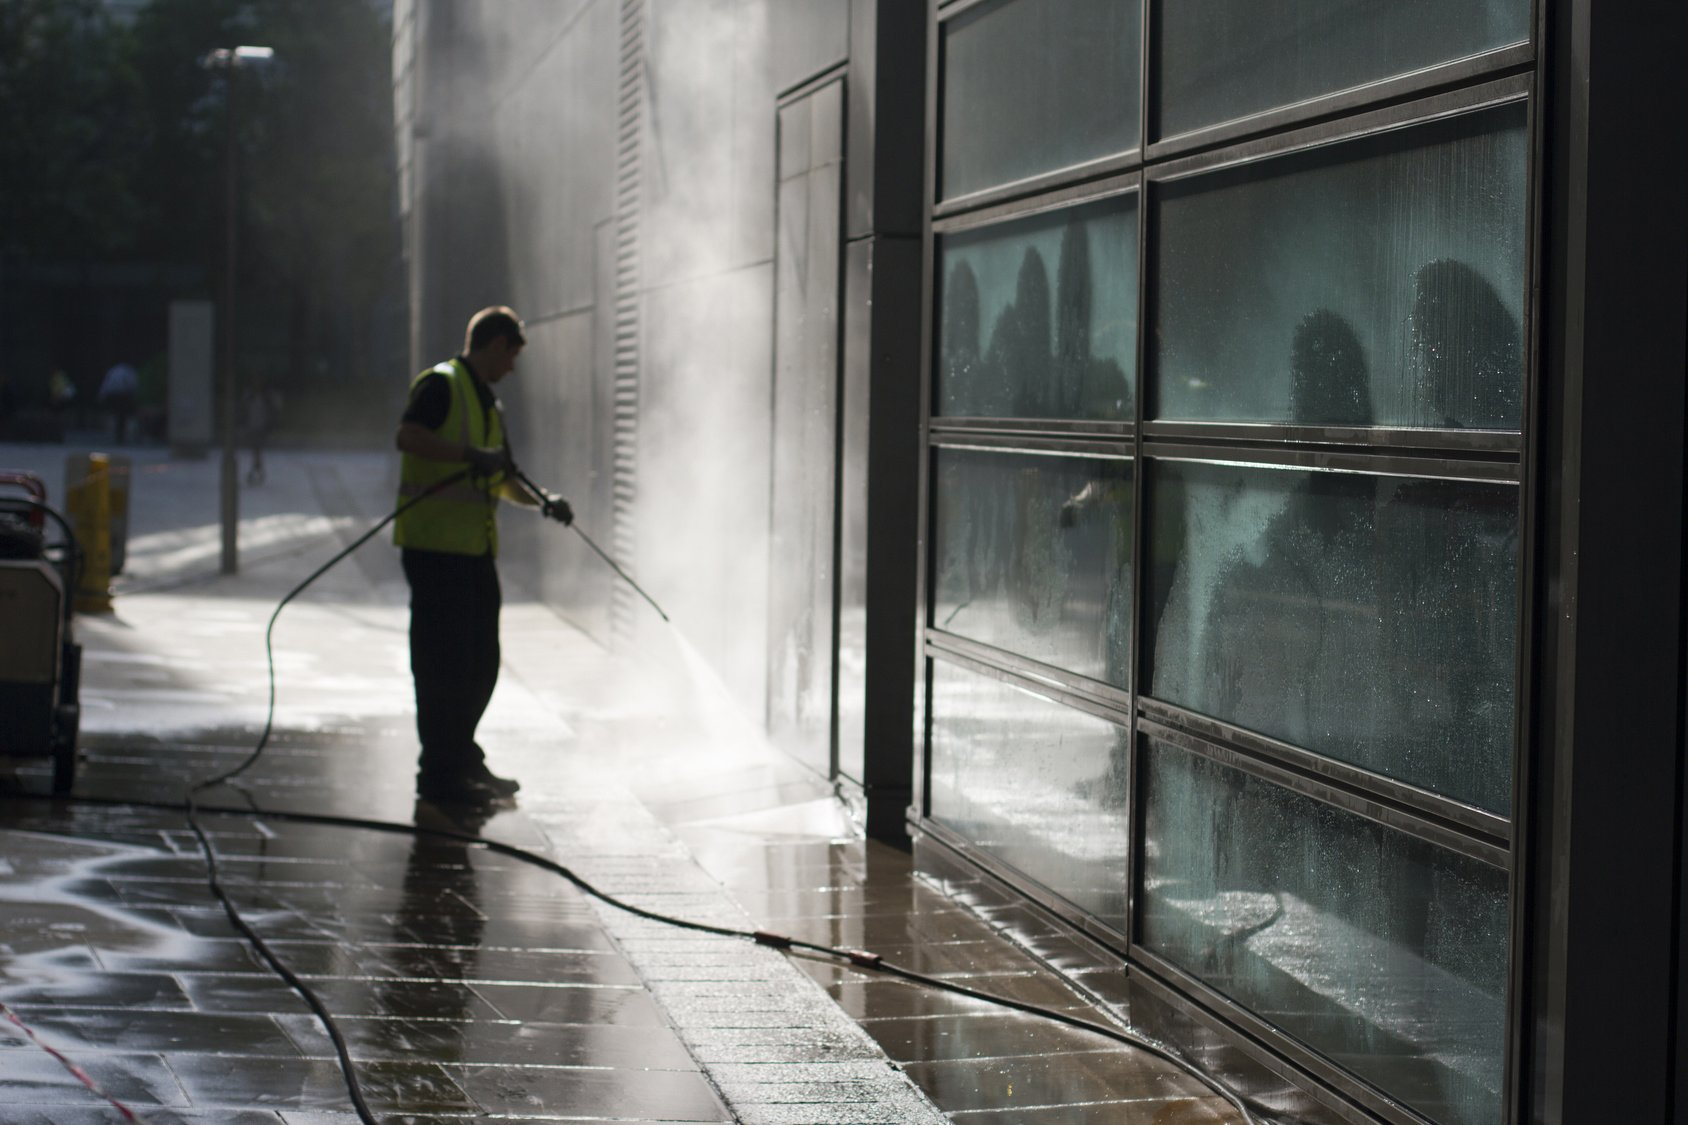 HOW TO CLEAN, DISINFECT, SANITIZE WITH THE PRESSURE WASHER